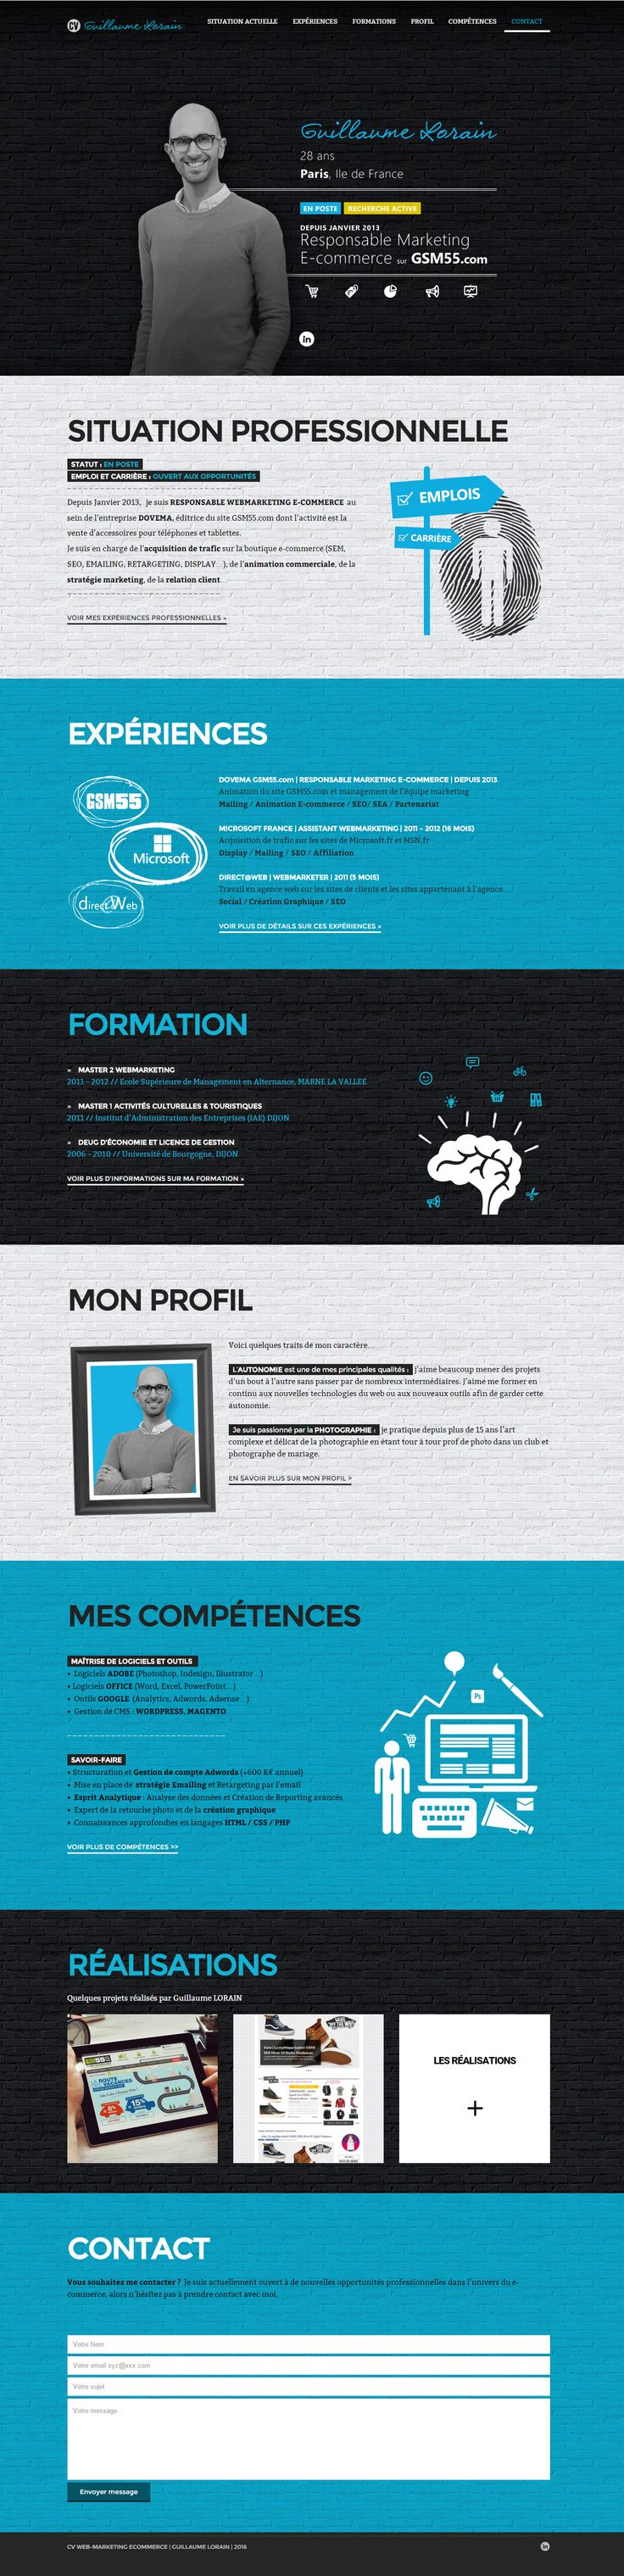 cv webmarketing guillaume lorain site cv cratif cv graphique marketing resume website e